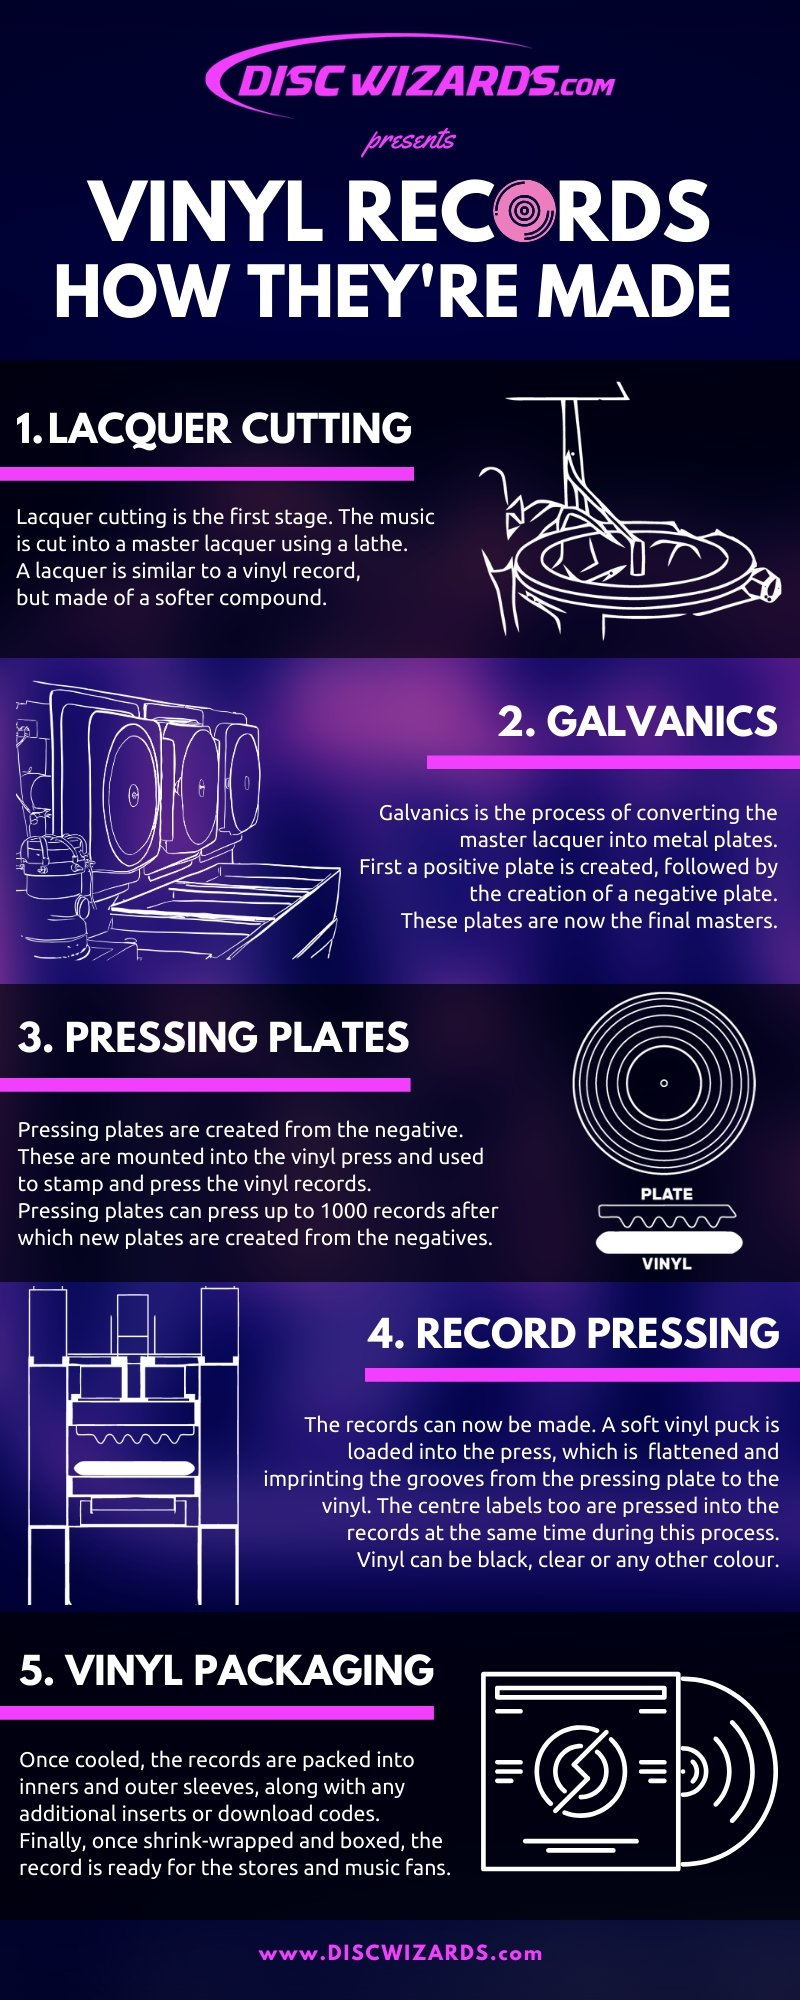 Vinyl record pressing manufacture process infographic